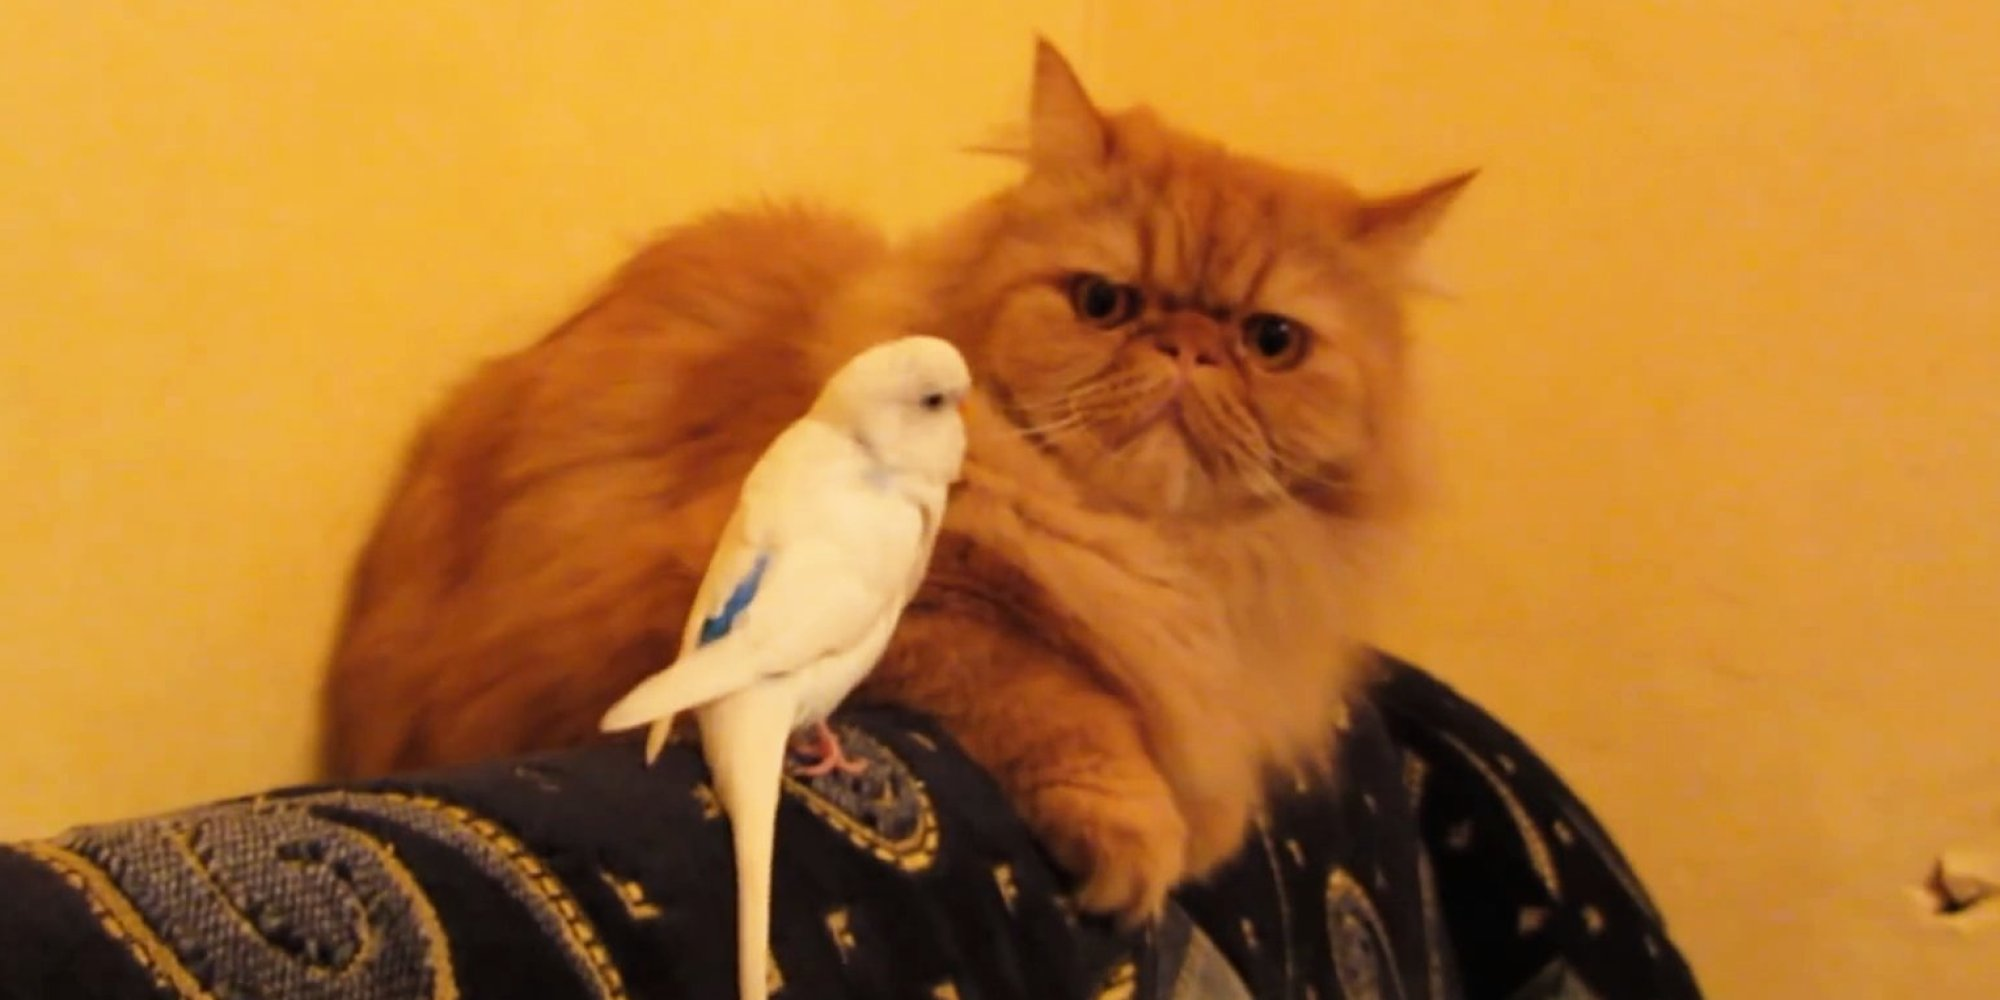 Heres Proof That Birds Just Desperately Want To Be Friends With - Dogs annoying cats with friendship